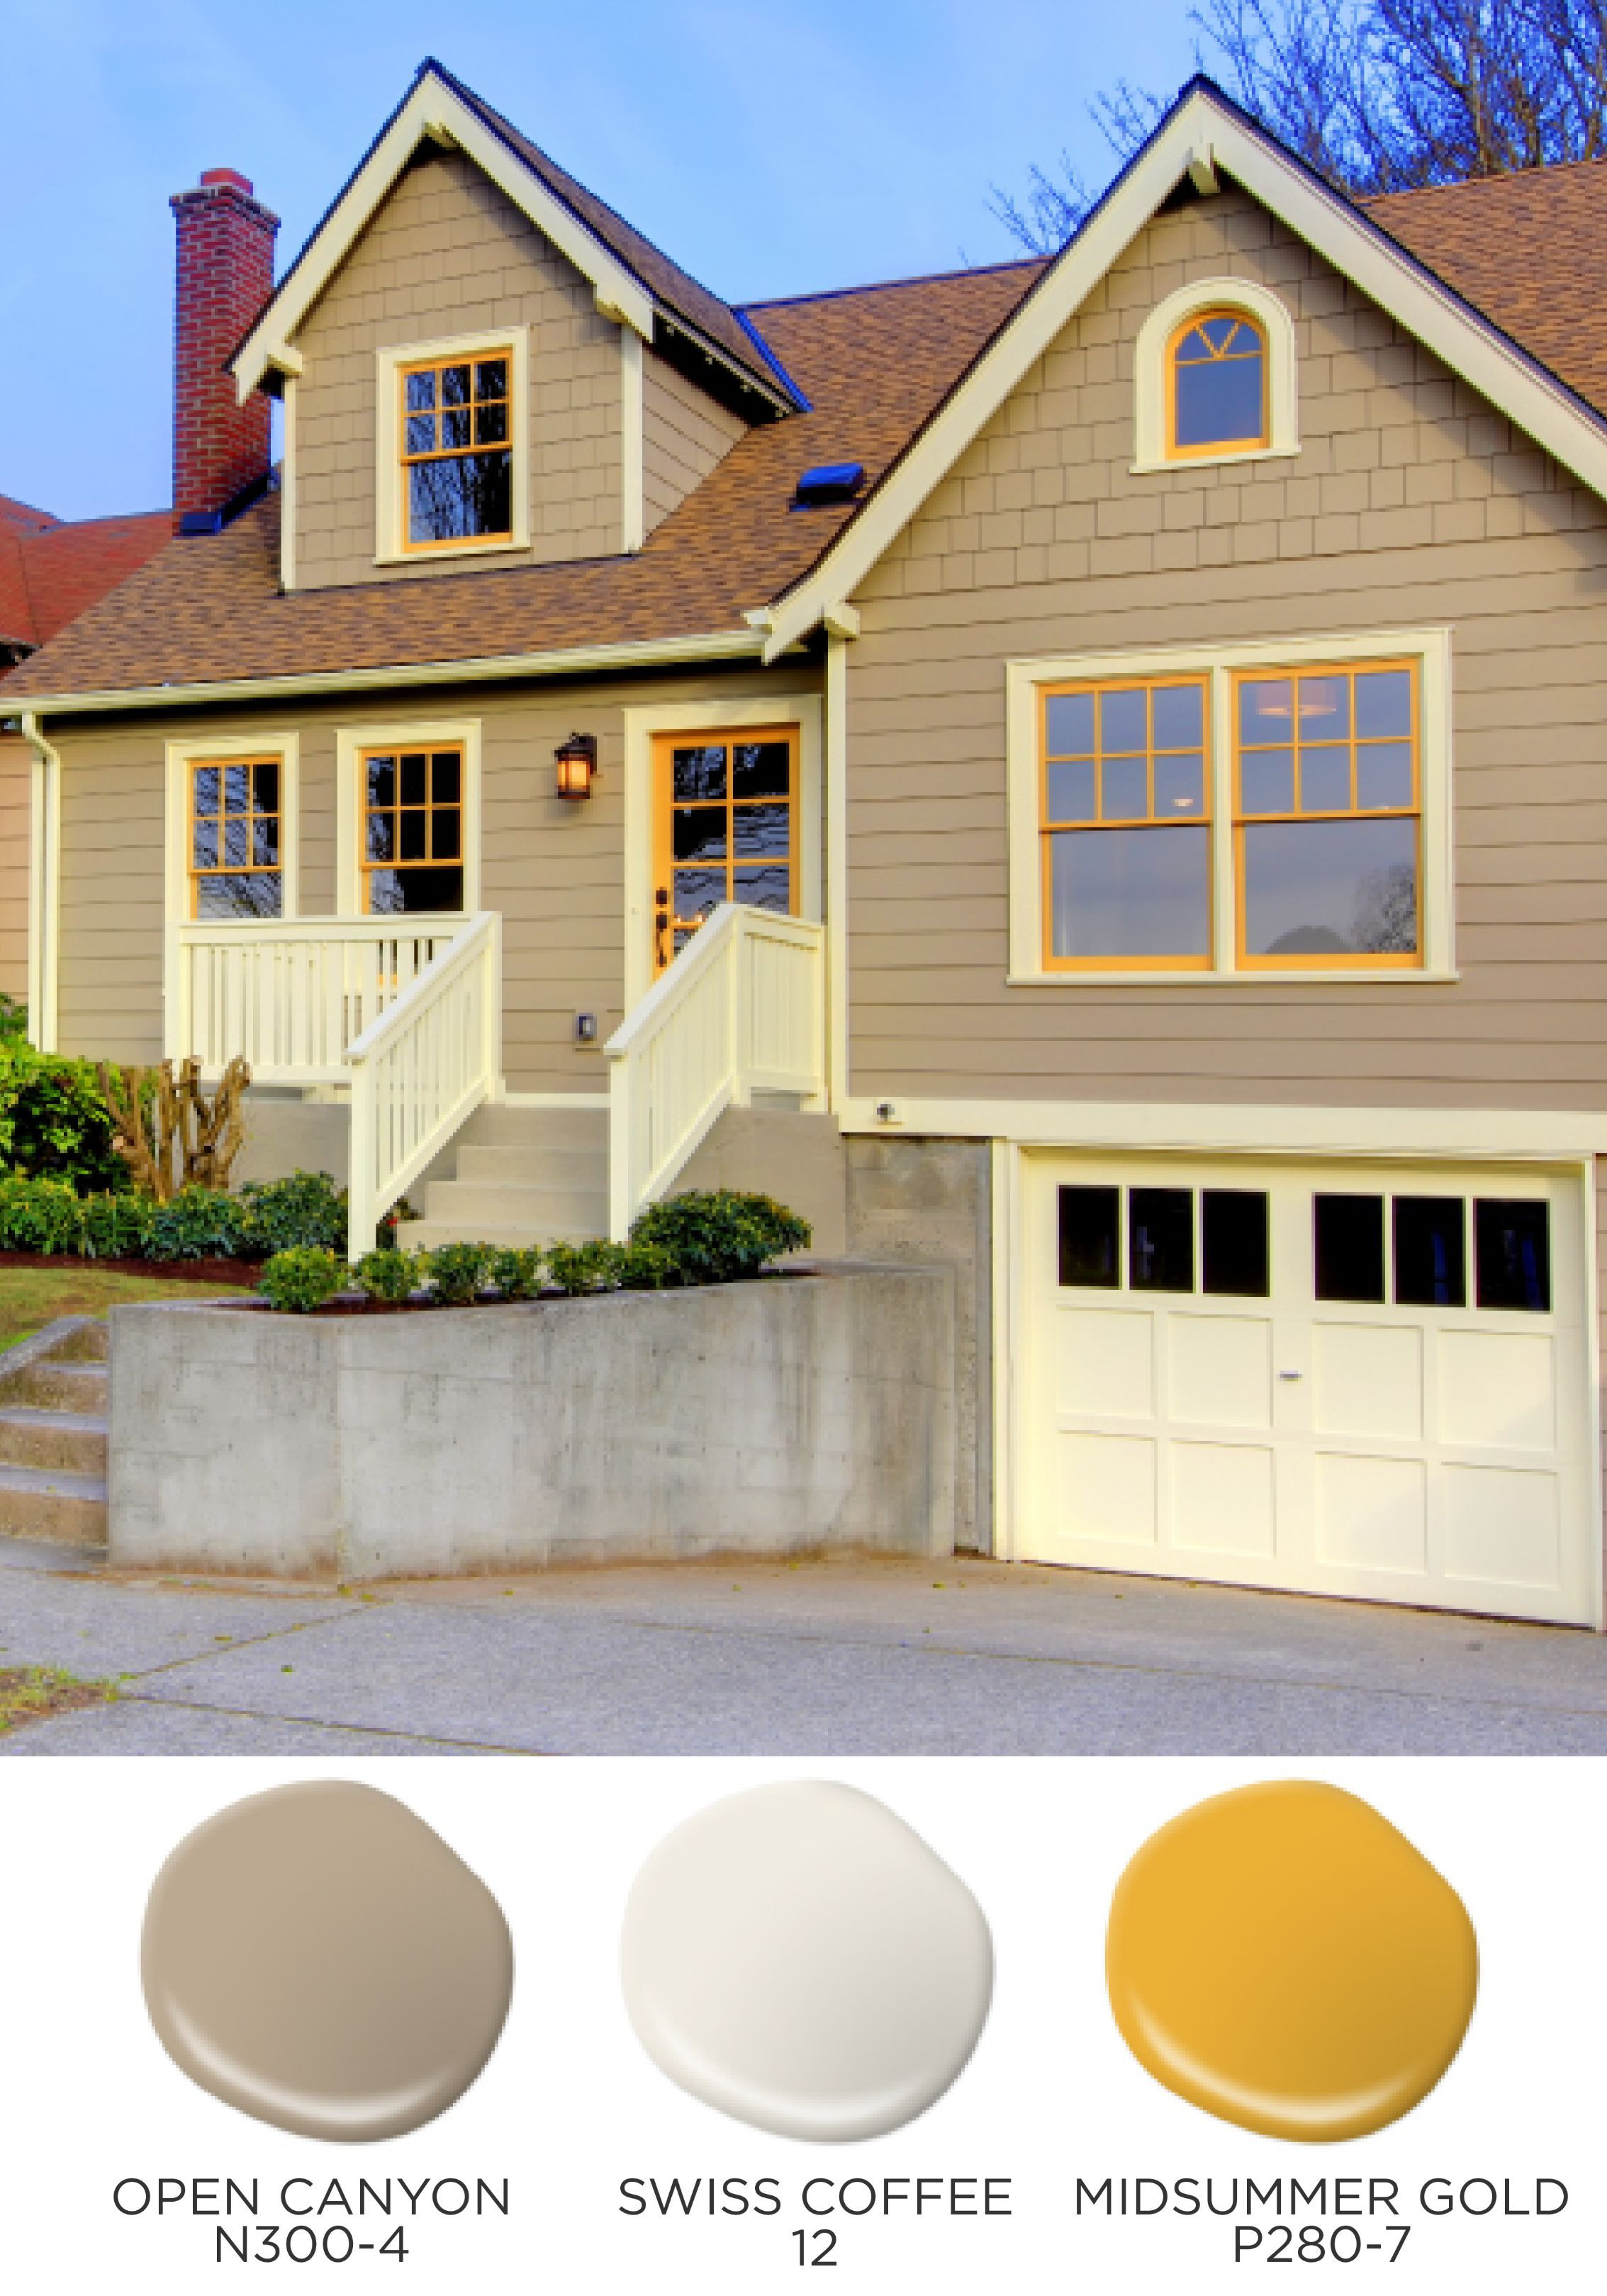 Bright Sunny And Oh So Cheerful The Combination Of Behr Neutrals With A Pop Of Midsummer Gold Will Bre Brown Roof Houses House Exterior Window Trim Exterior